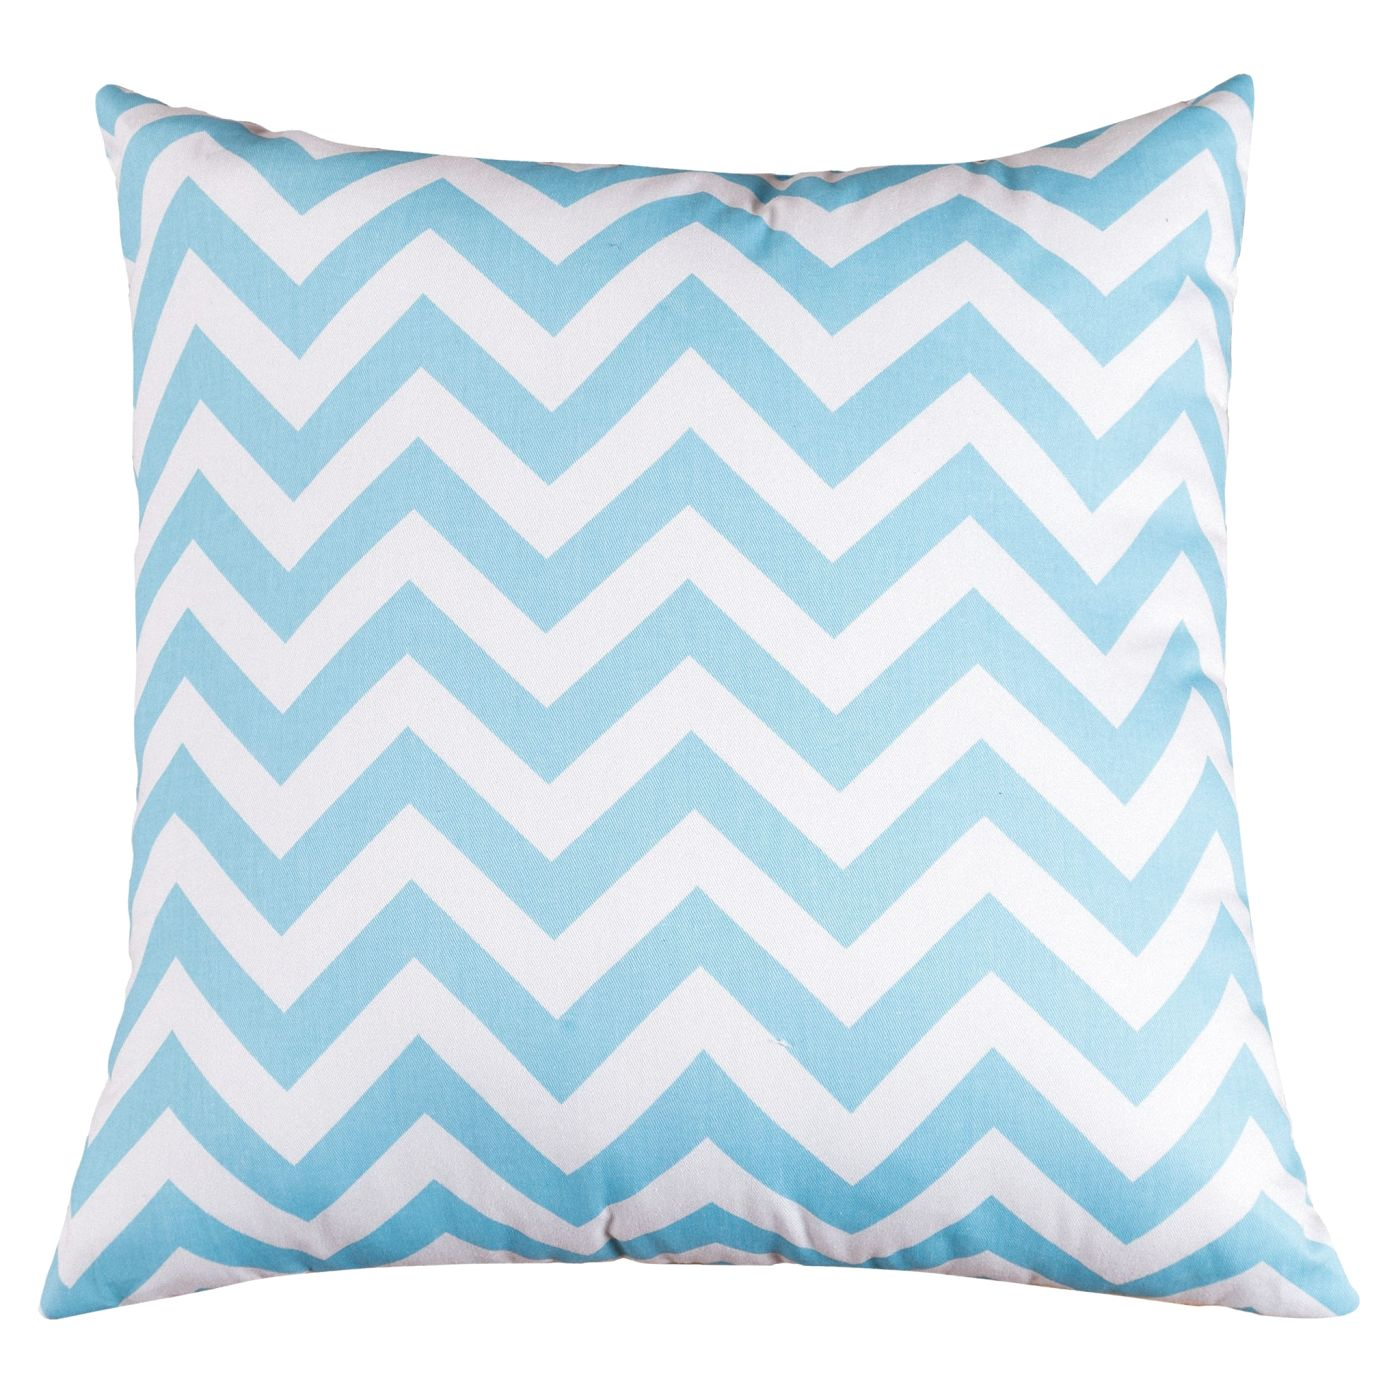 X-Large Coral Chevron Majestic Home Goods Pillow